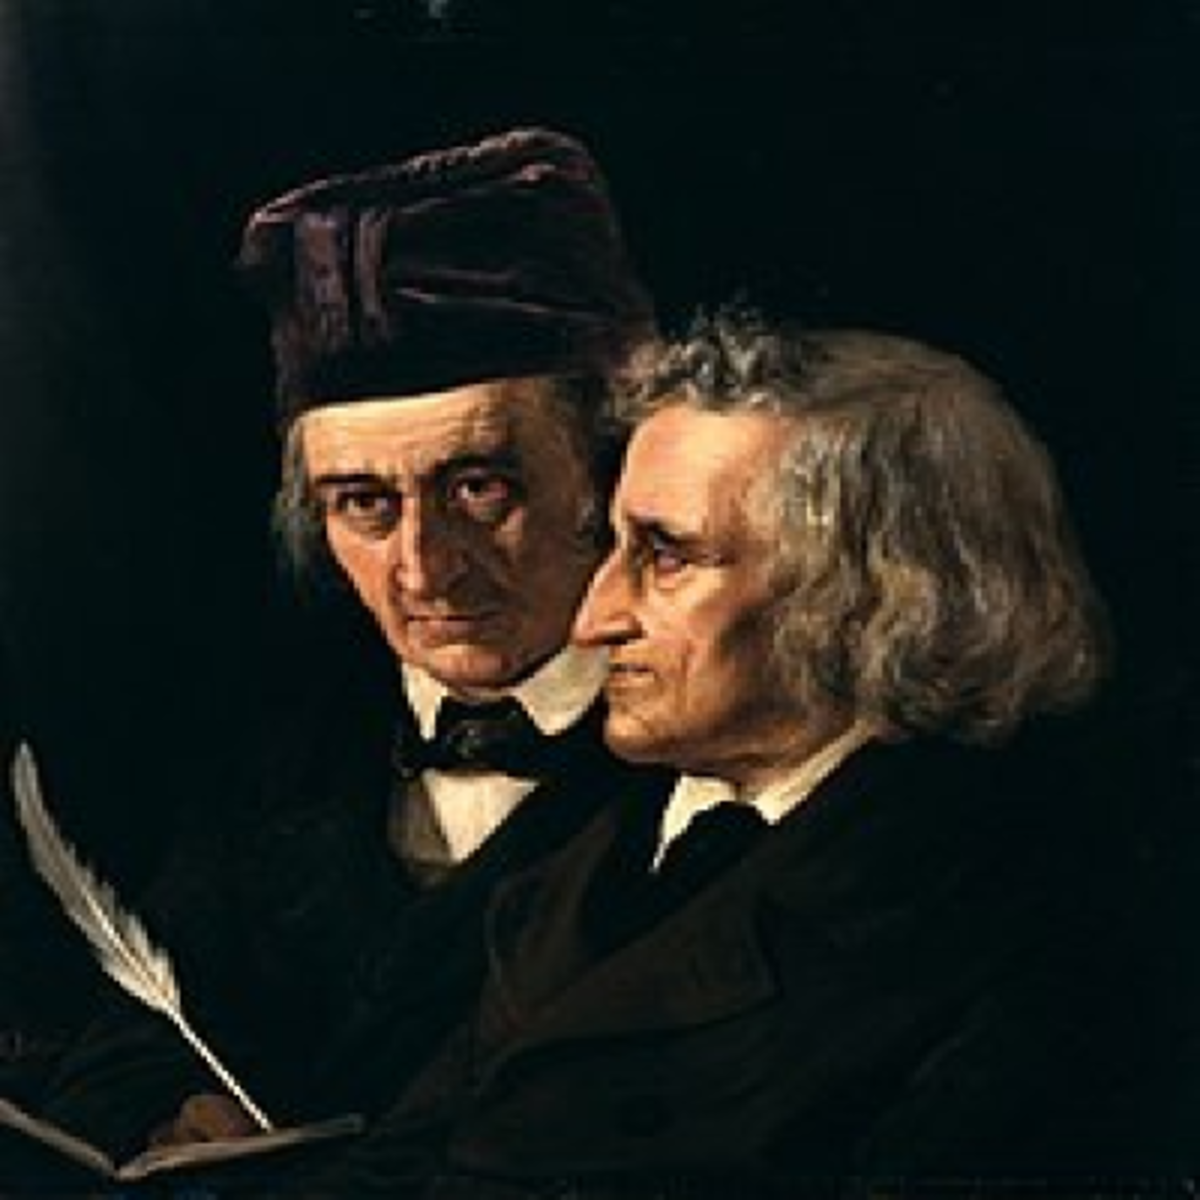 An 1855 Painting of the Brothers Grimm by Elizabeth Jerichau Baumann